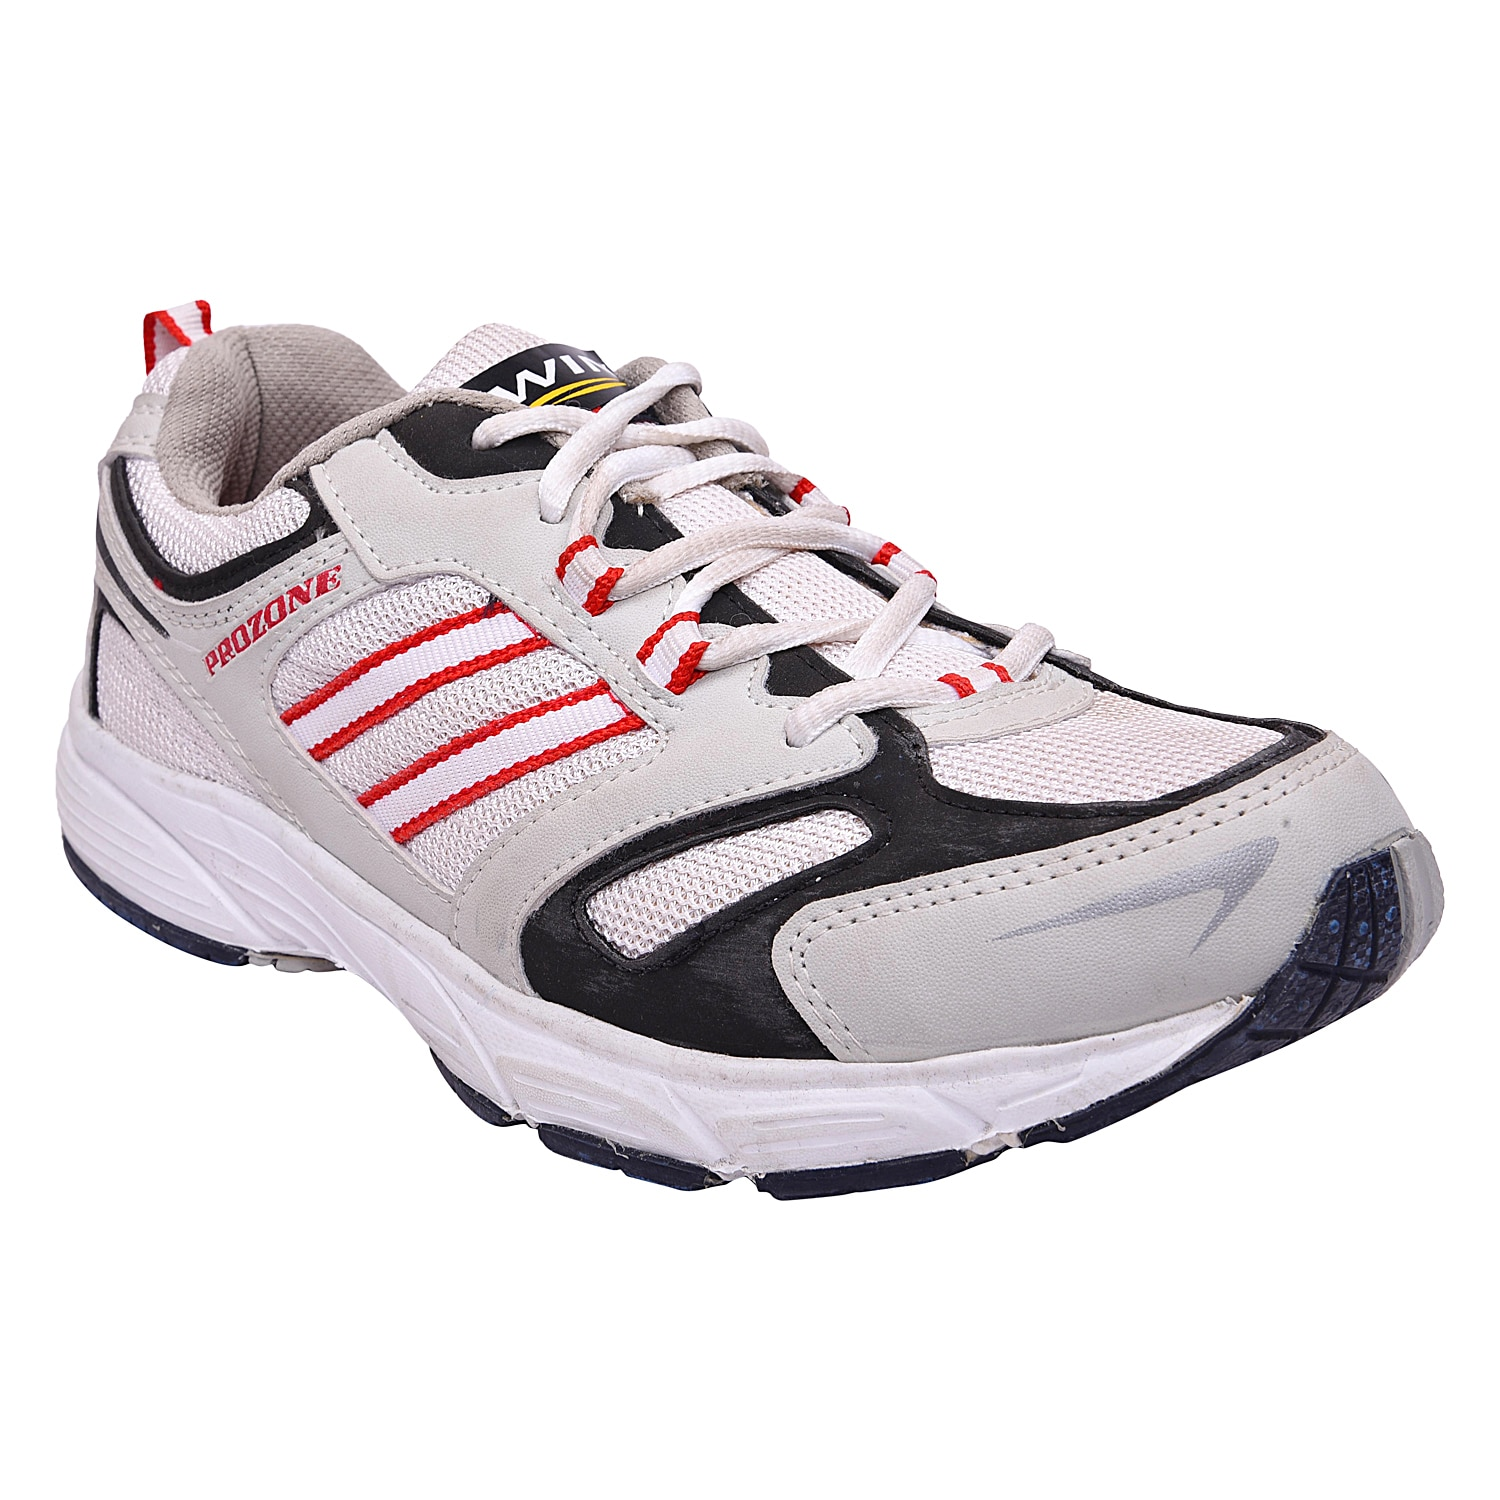 Mens sports shoe TPH-P-49 White red colours 1